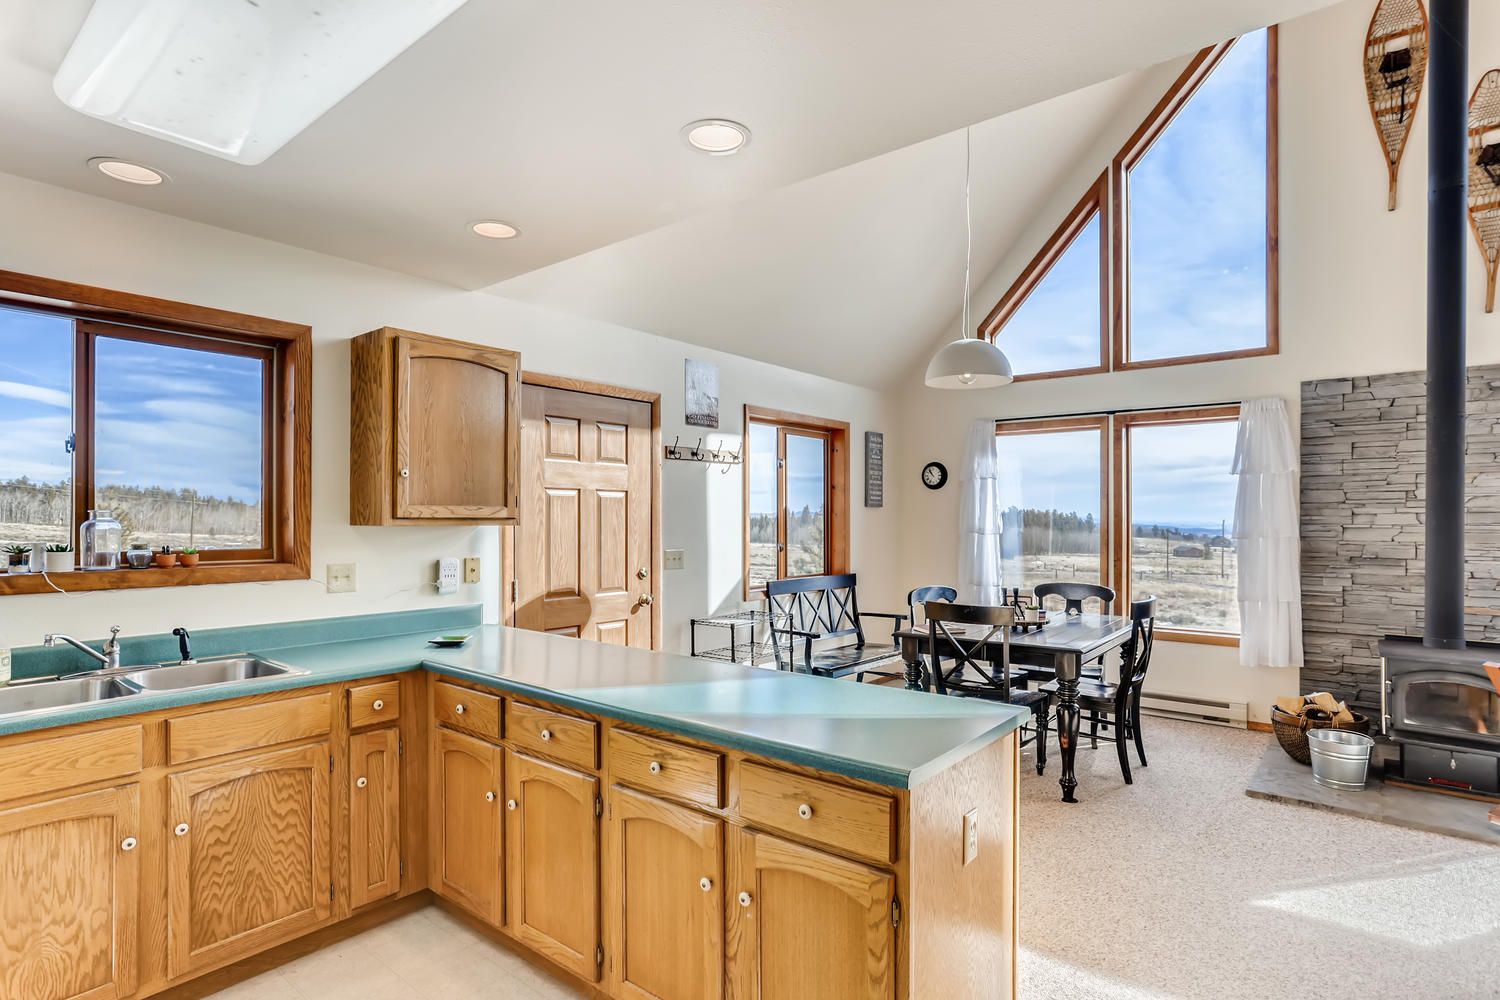 Kitchen has everything needed to make meals, plus a view.